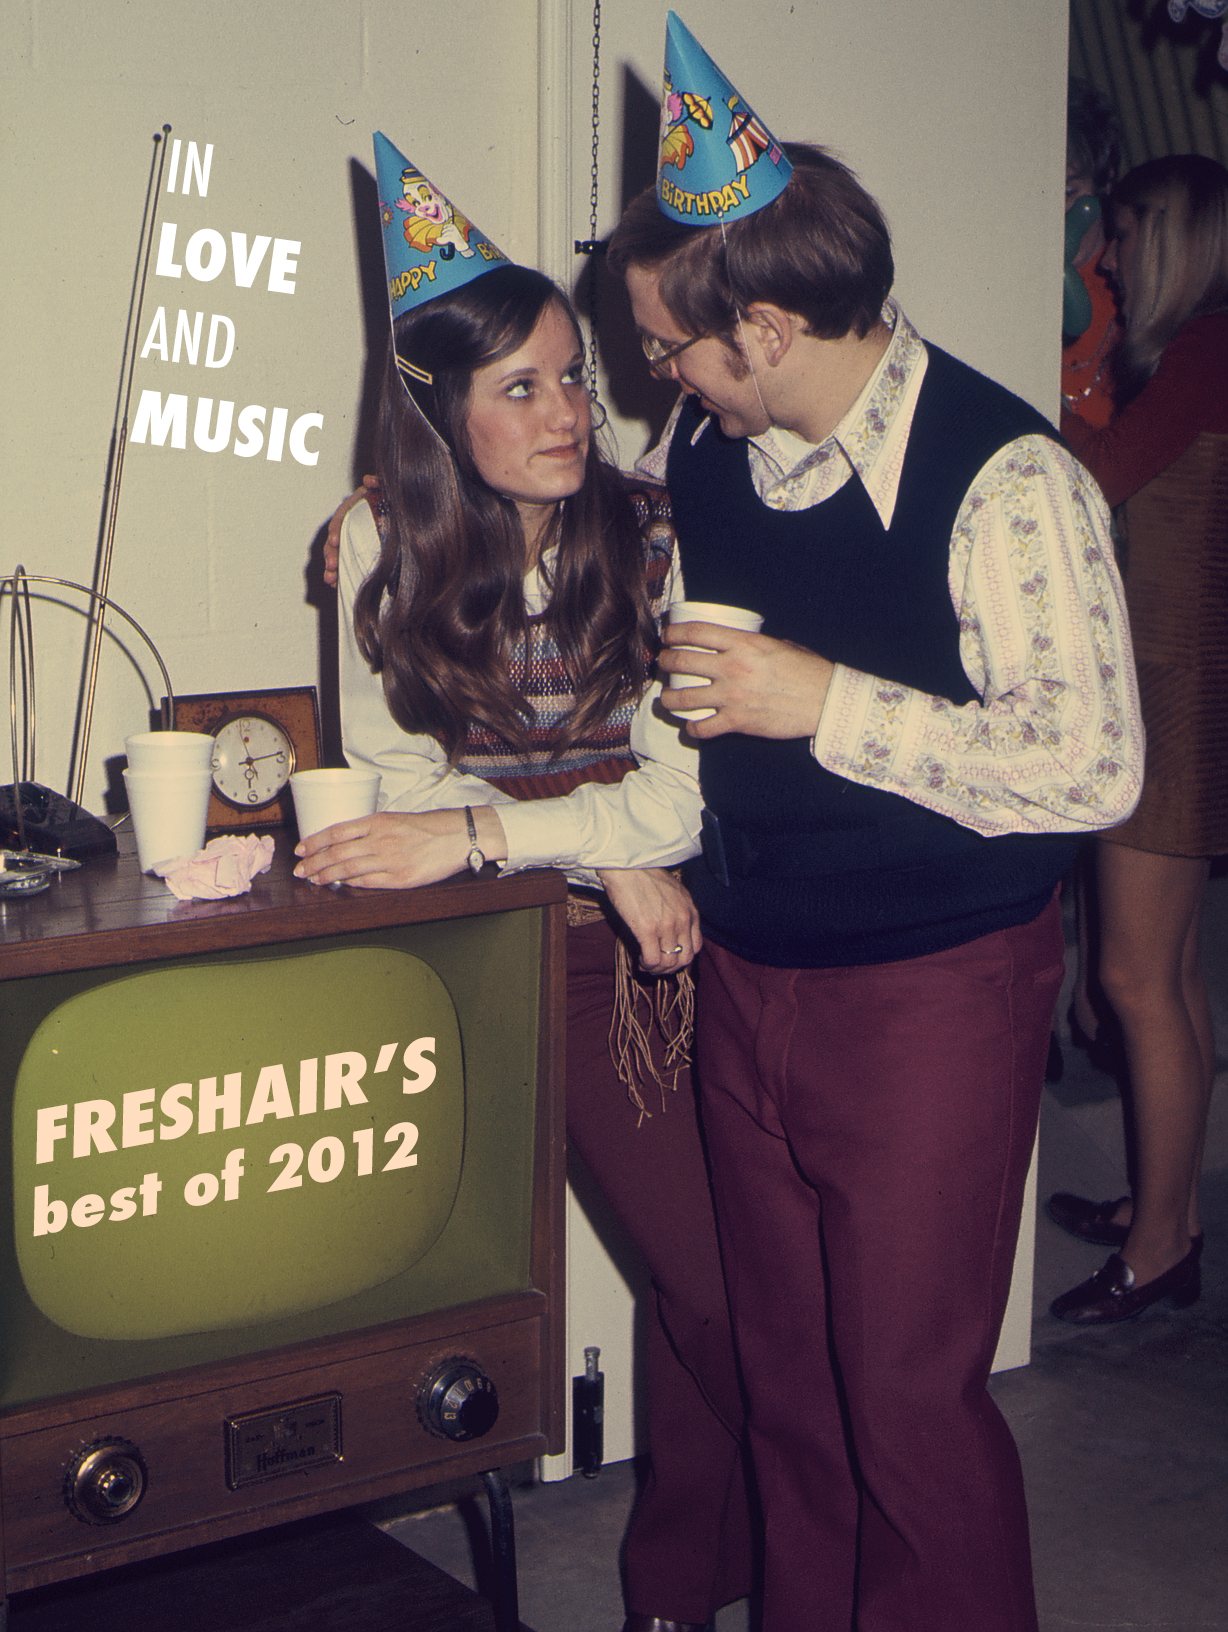 freshair best of 2012-1